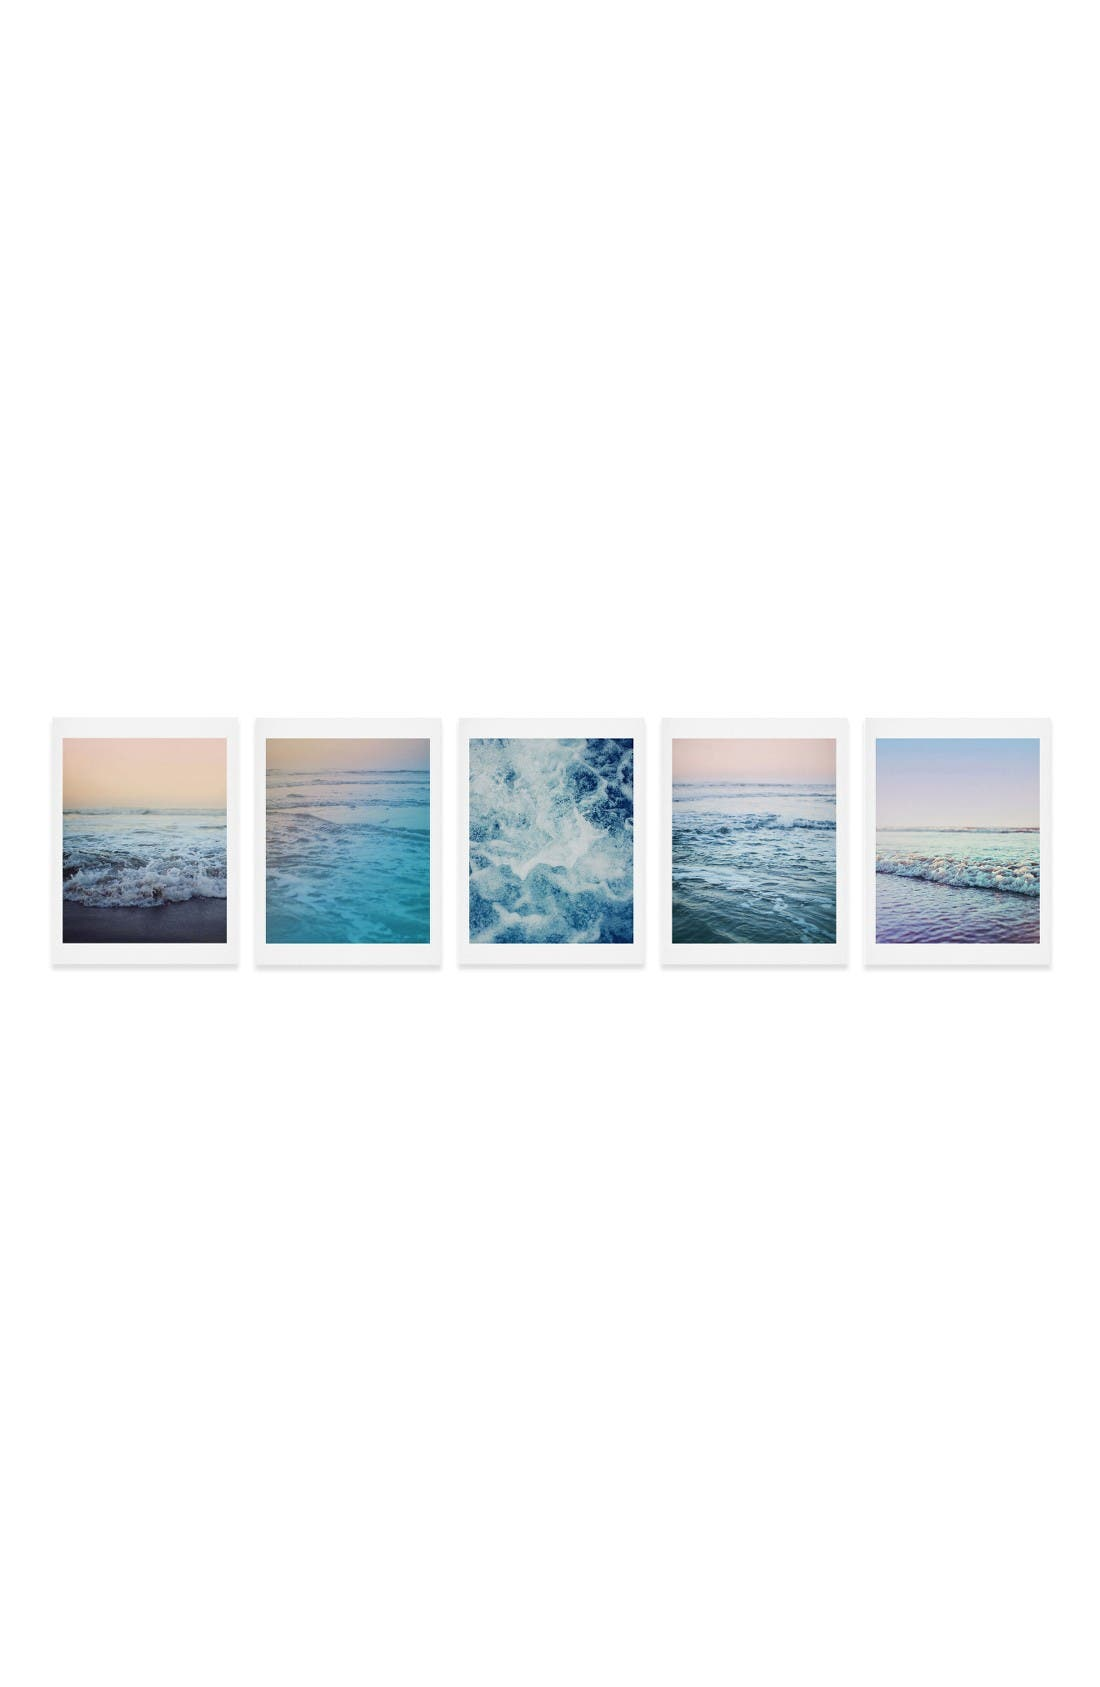 Deny Designs Ocean Five-Piece Gallery Wall Art Print Set